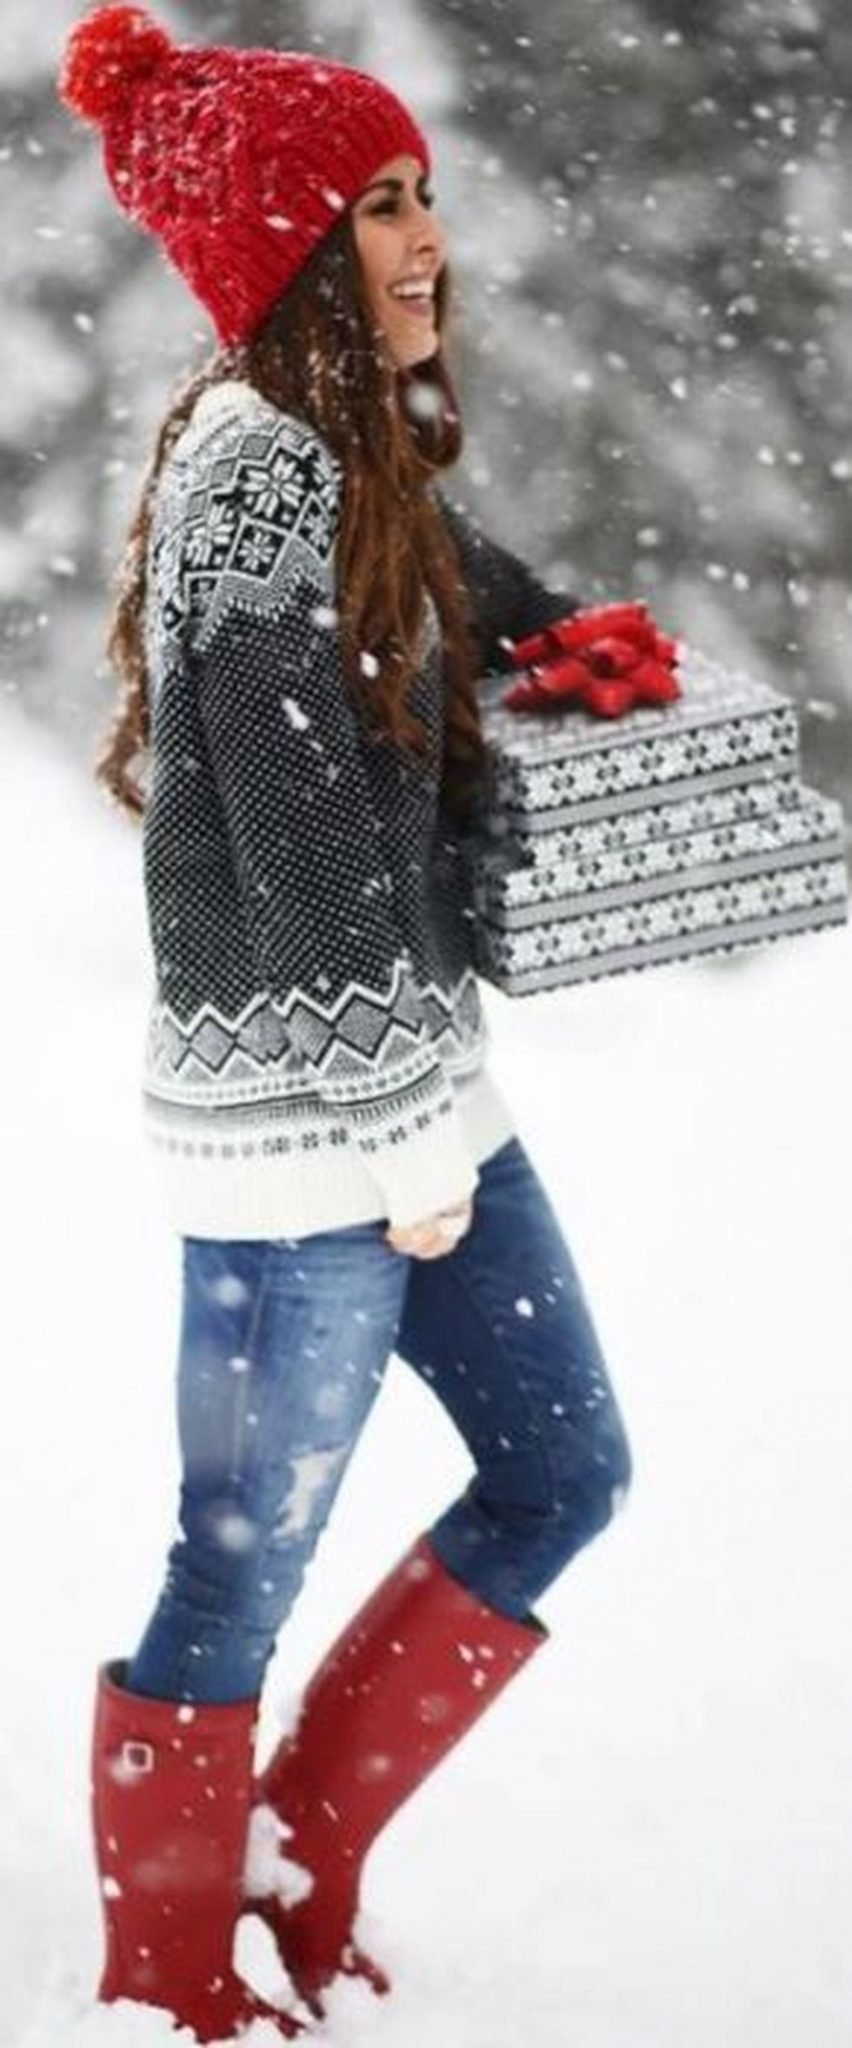 Fashionable women hats for winter and snow outfits 41